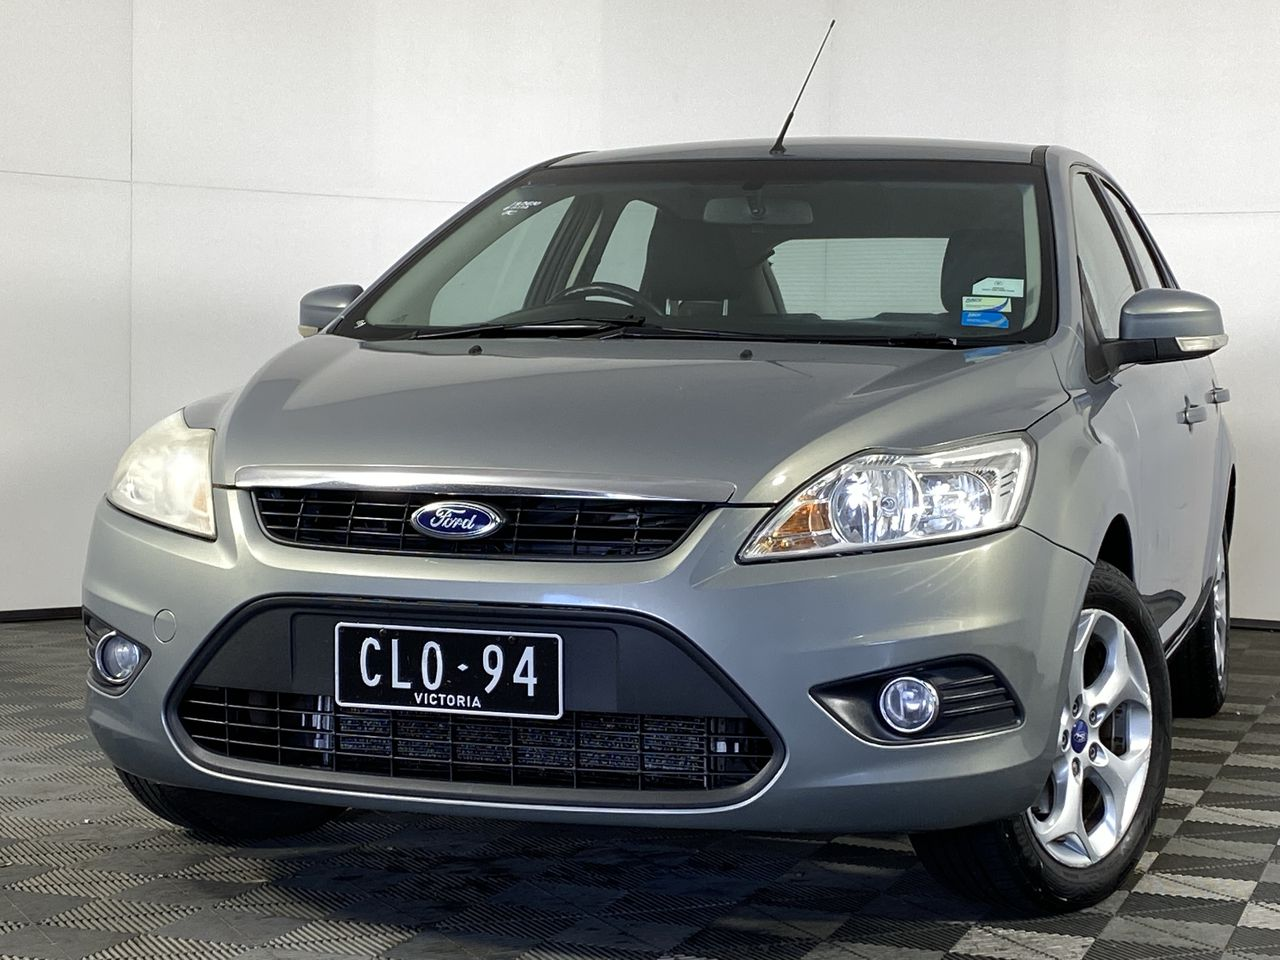 2011 Ford Focus LX LV Automatic Hatchback(WOVR)